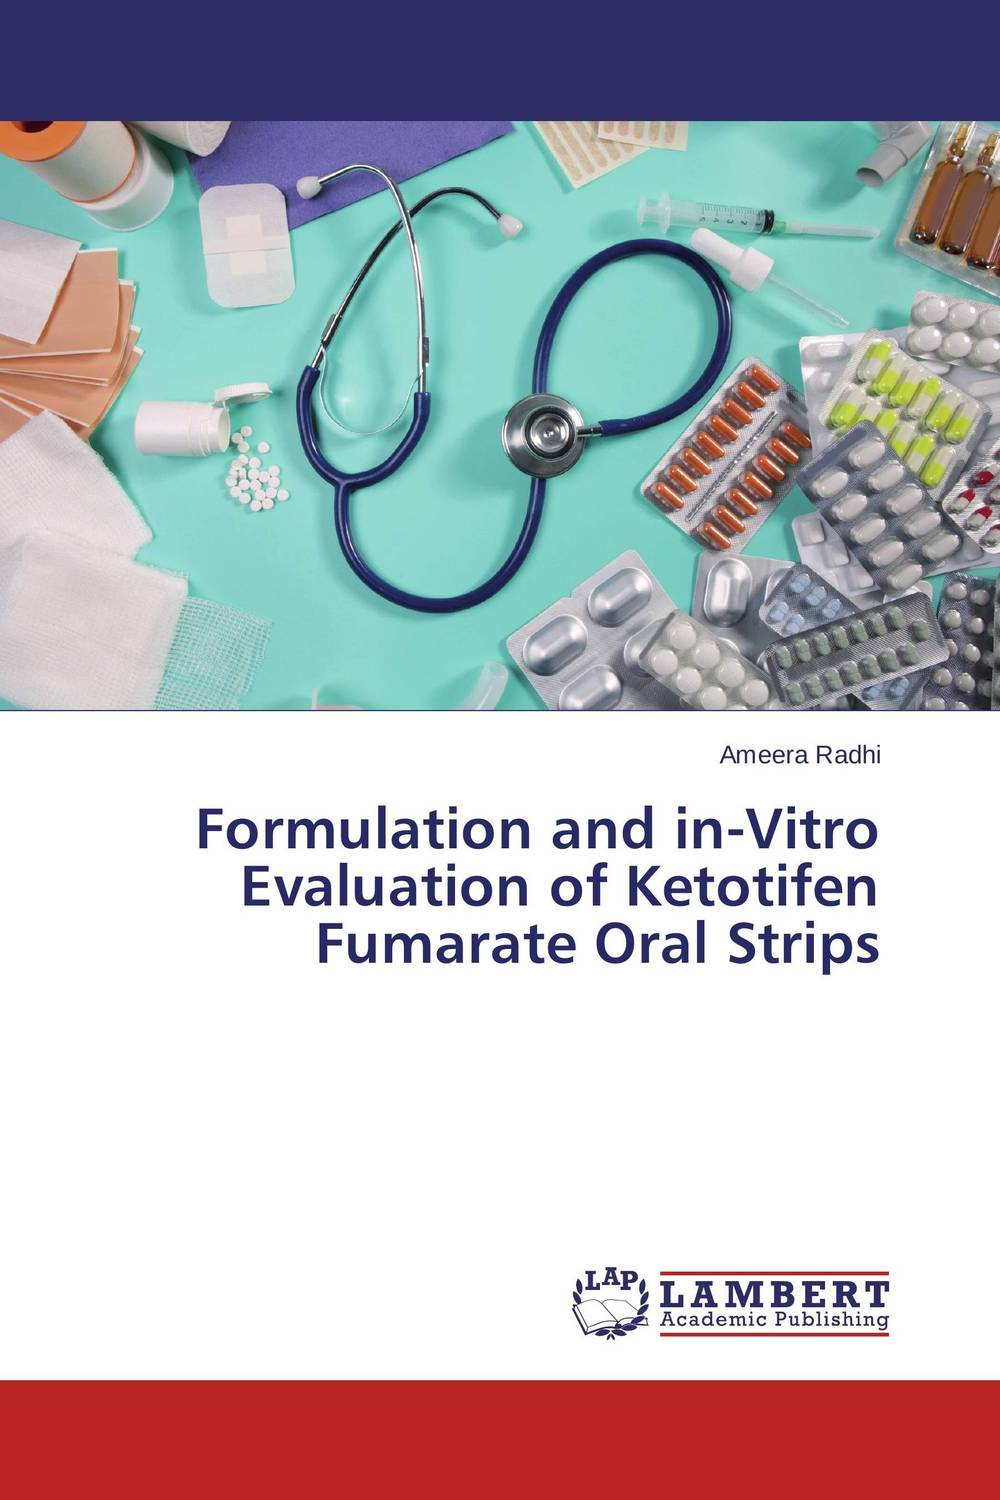 Formulation and in-Vitro Evaluation of Ketotifen Fumarate Oral Strips the role of evaluation as a mechanism for advancing principal practice